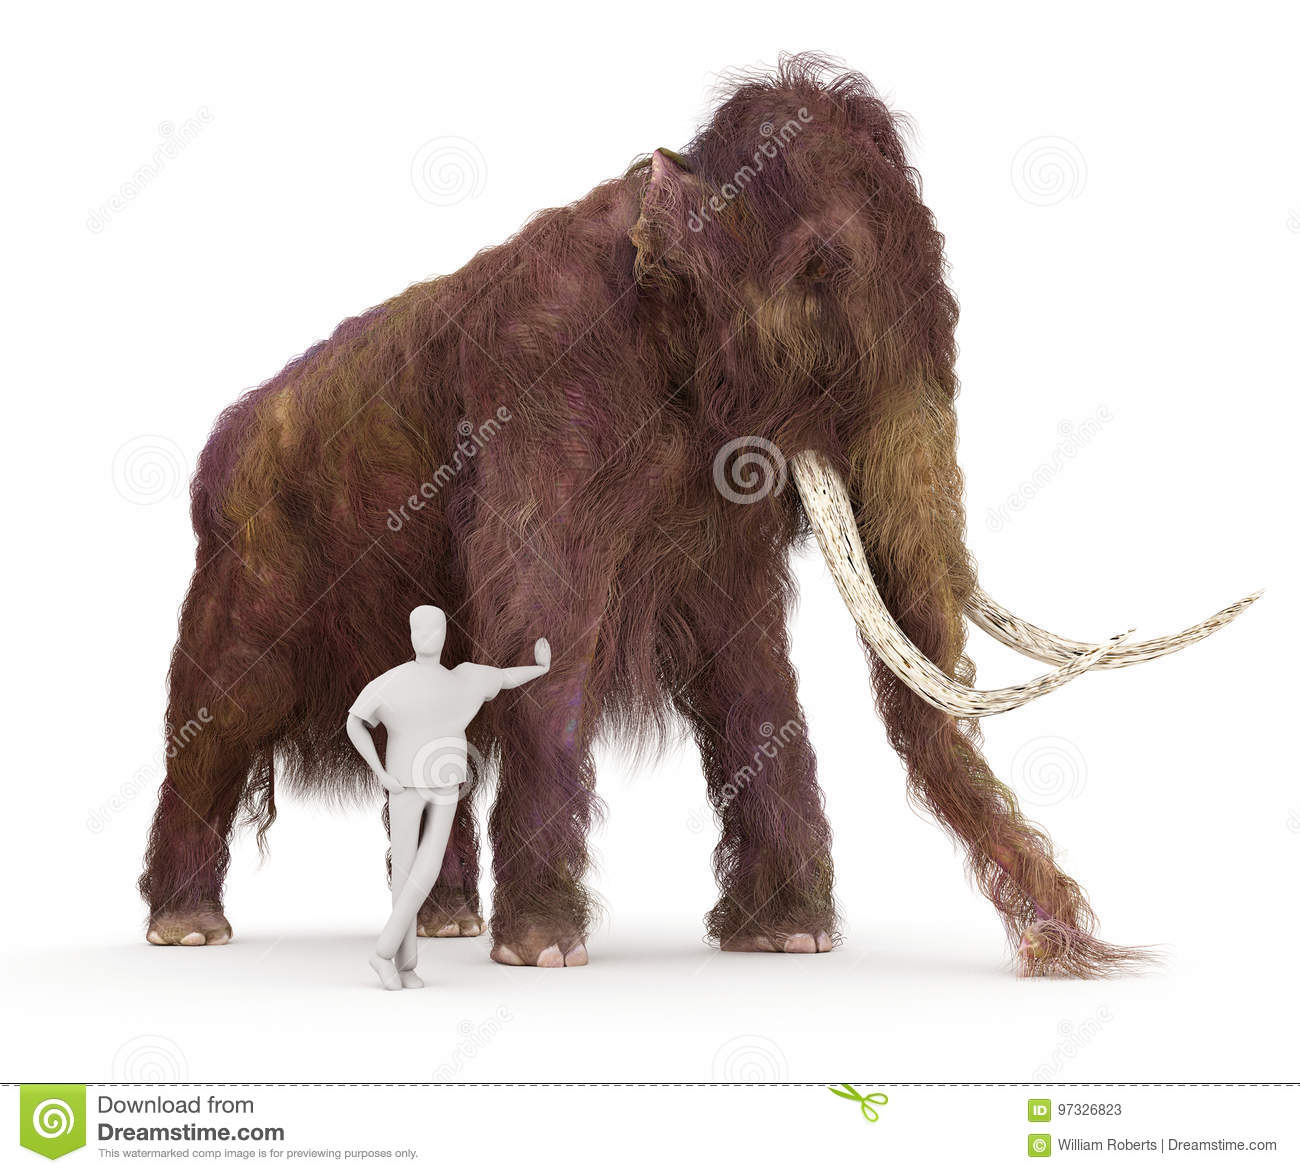 Woolly Mammoth And Human Size - 157.0KB